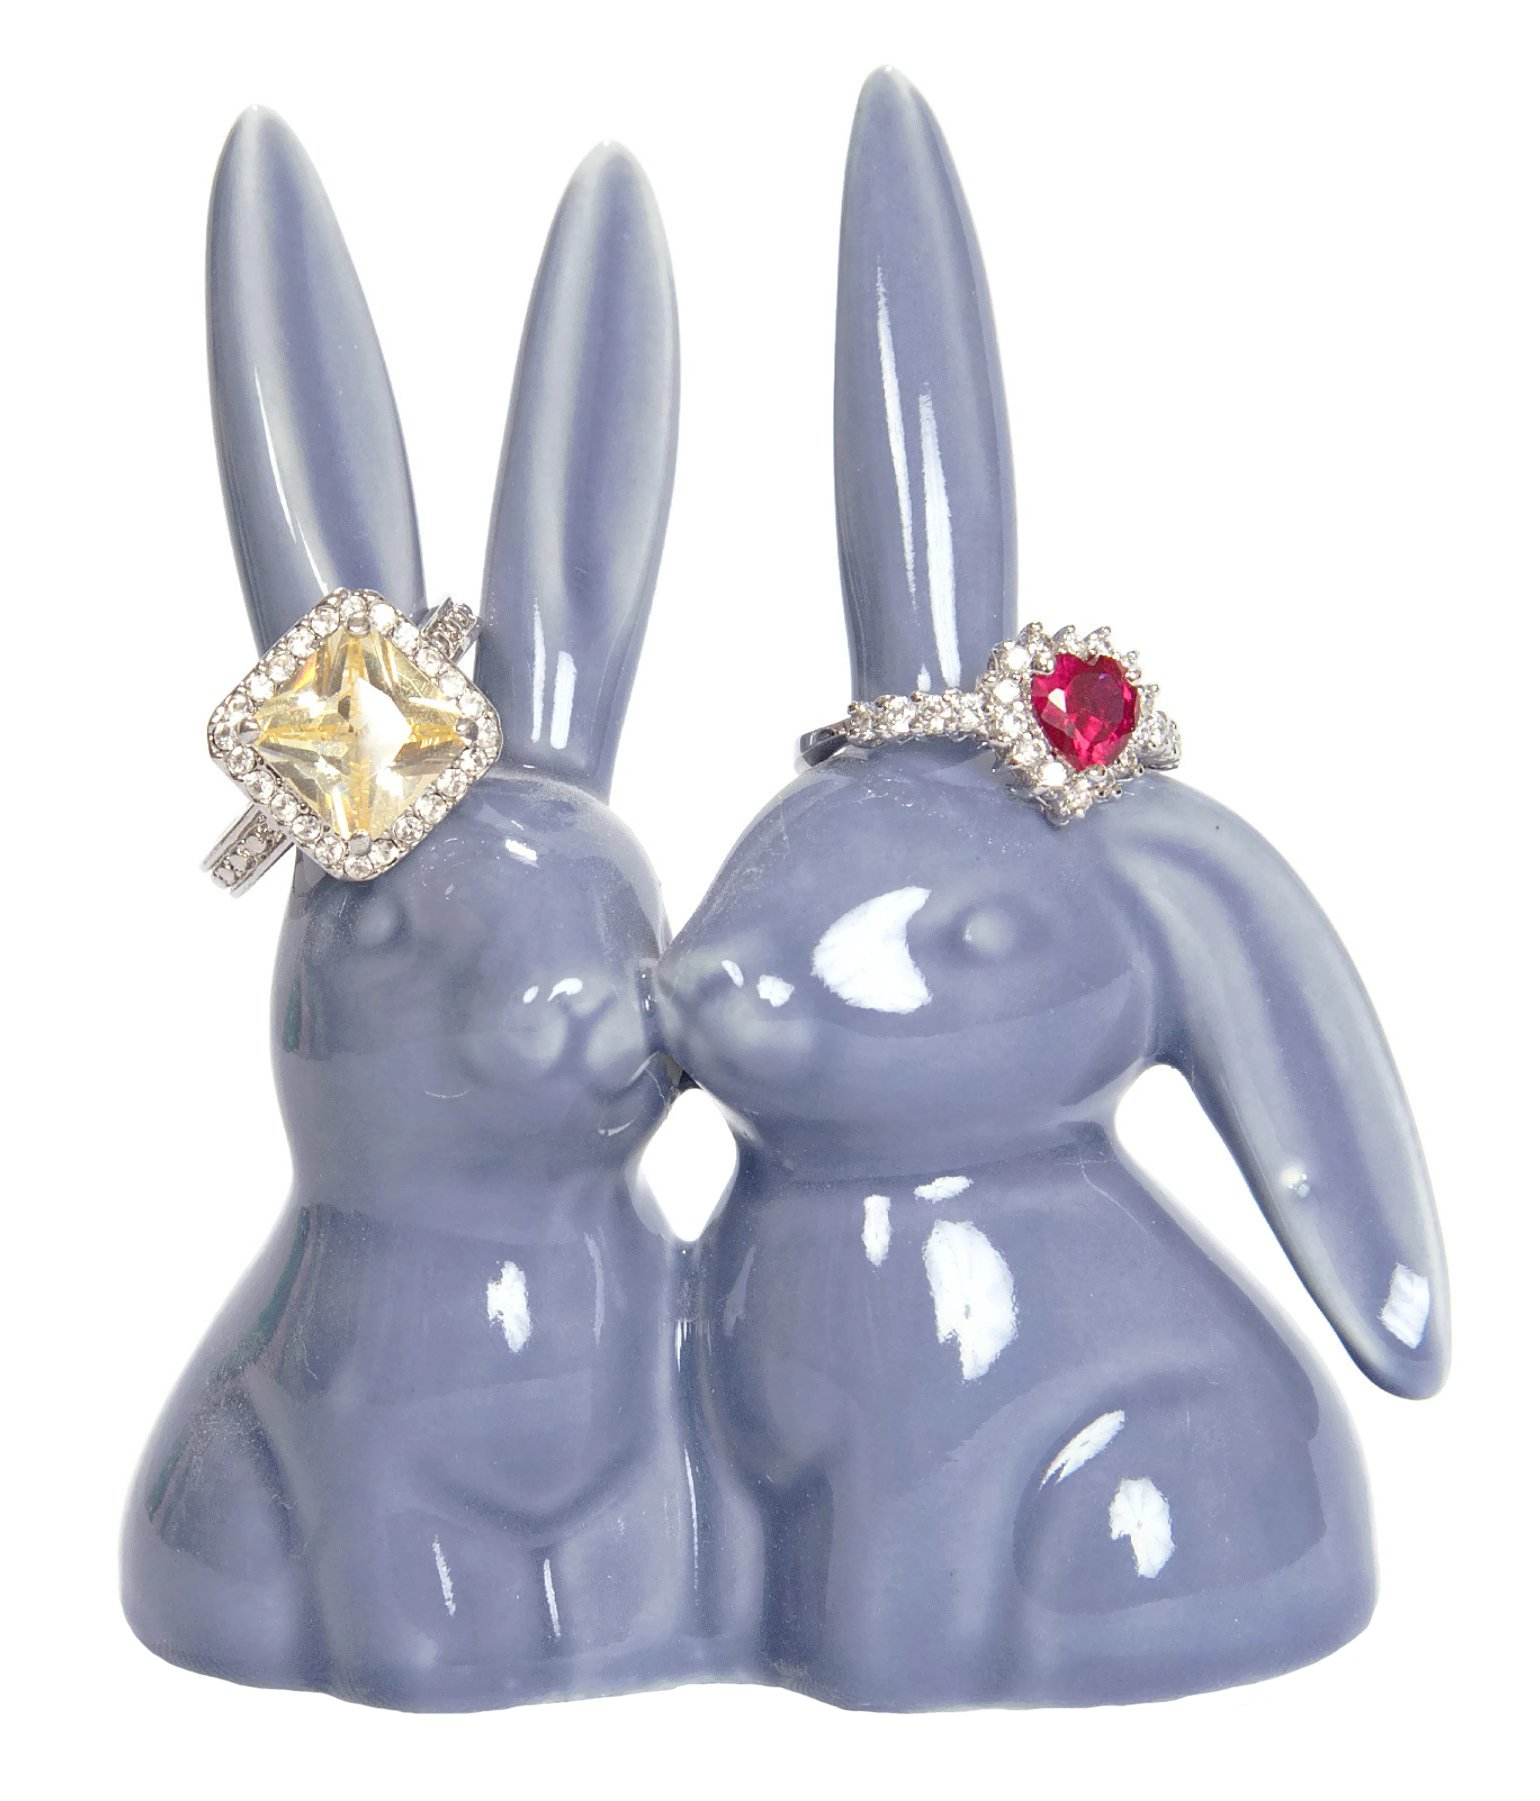 Beth Marie Luxury Boutique Bunny Rabbit Ring Holder, Purple Ceramic Engagement & Wedding Ring Holder, Measures 2.75'' Wx3.25 Hx1.75 D